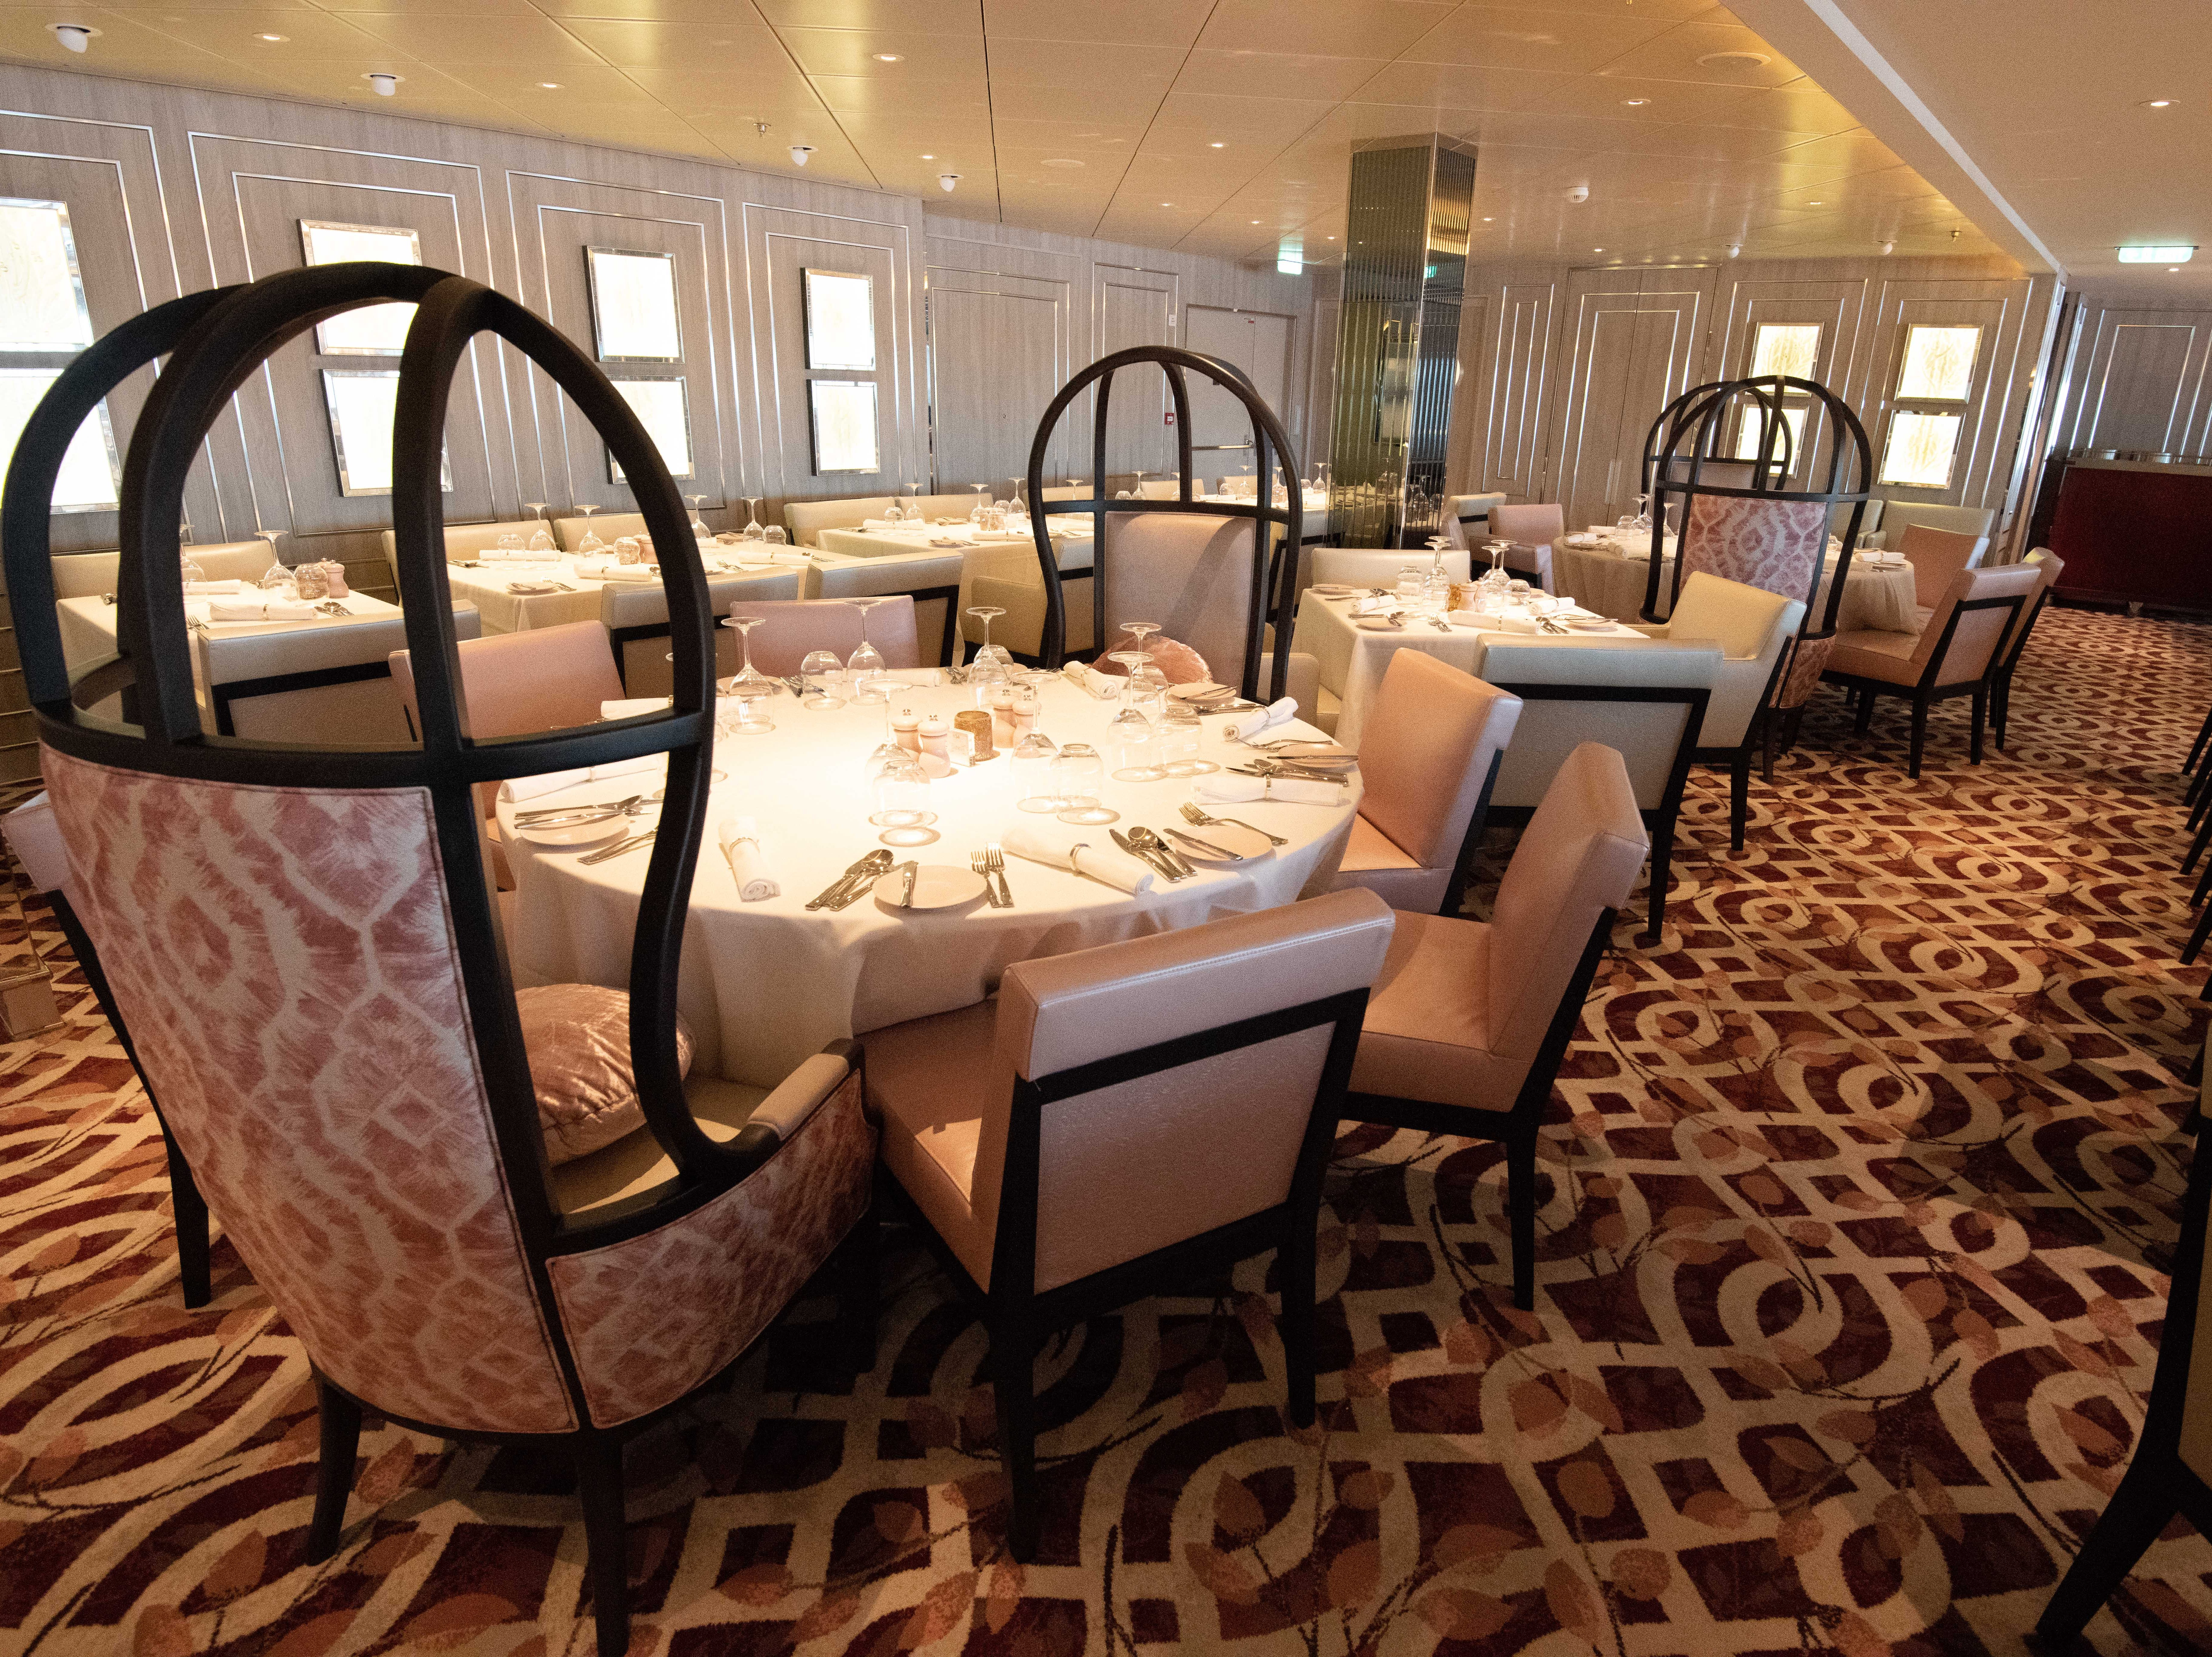 Normandie Restaurant also features wooden panels that were taken from the Celebrity Summit.